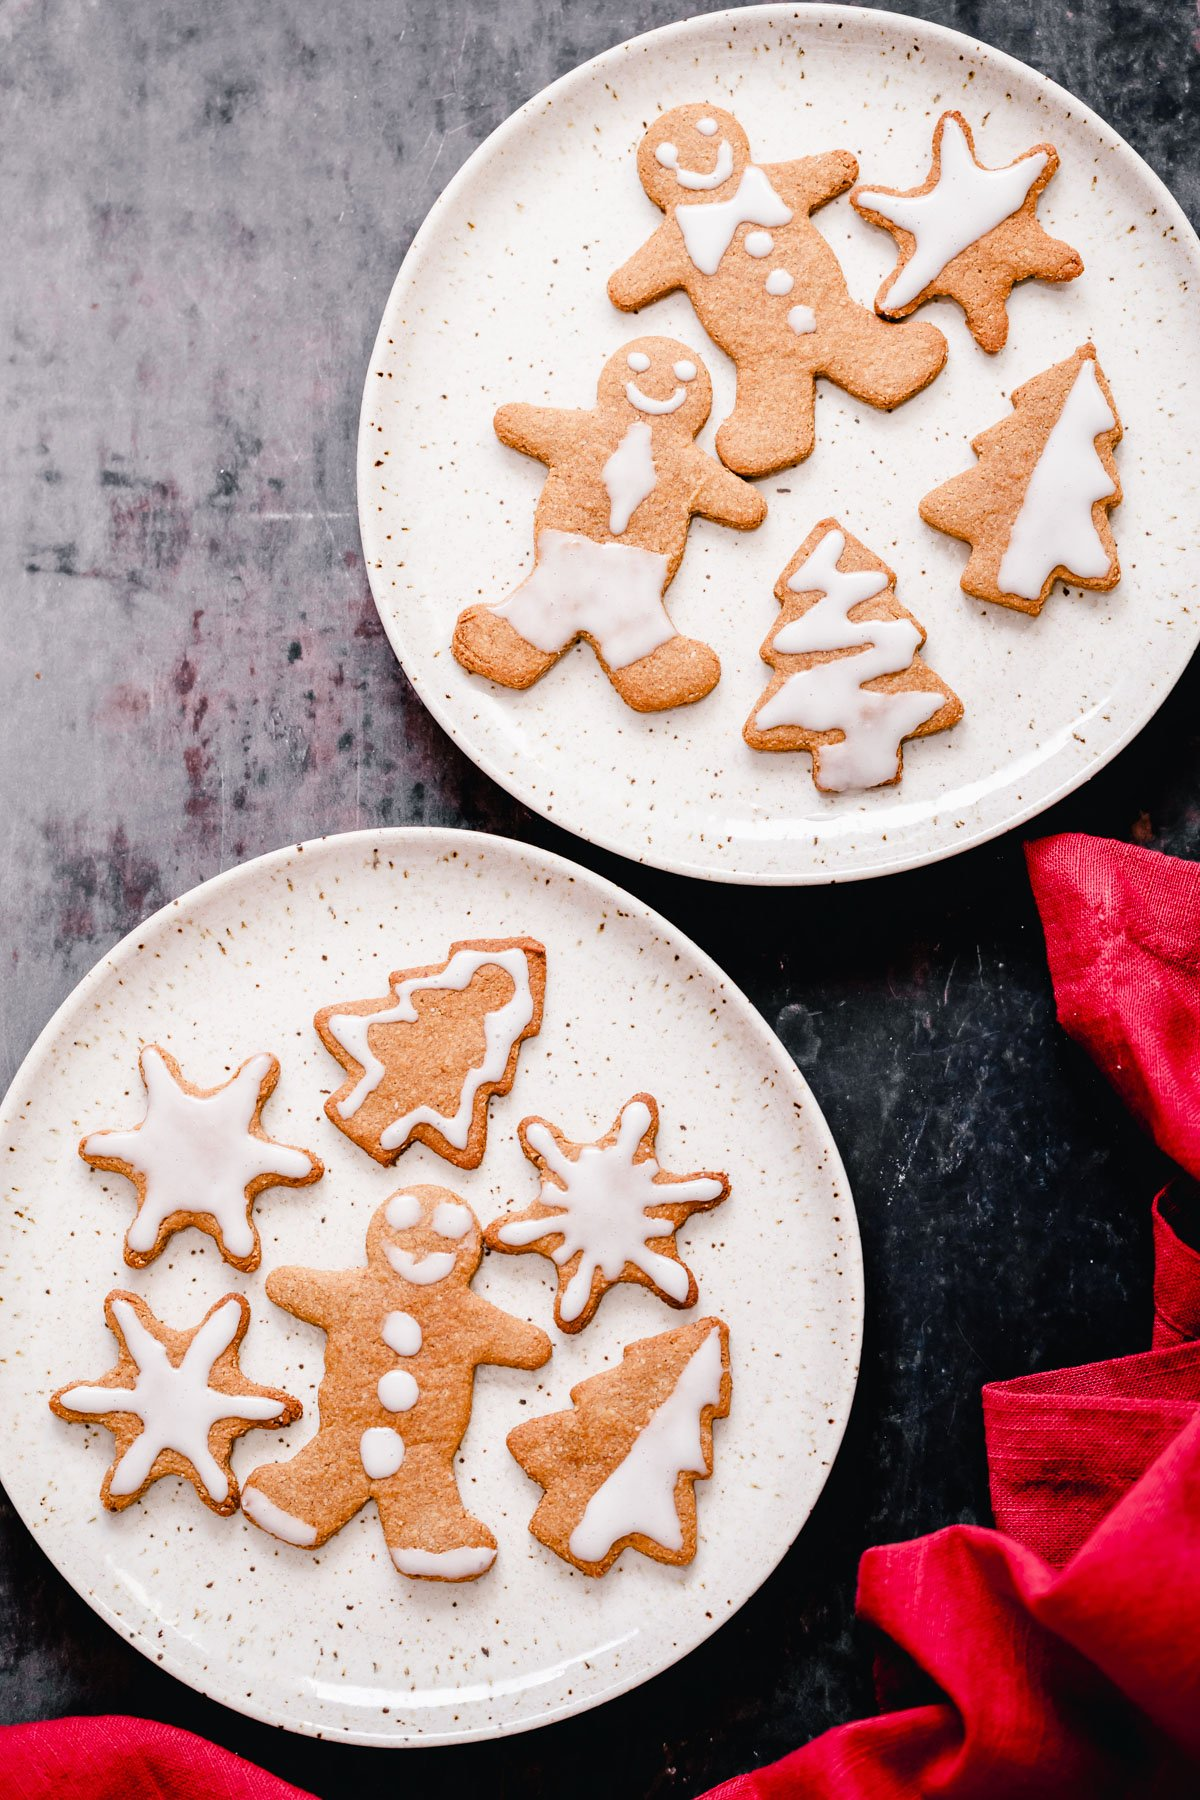 two plates with vegan iced gingerbread cookies